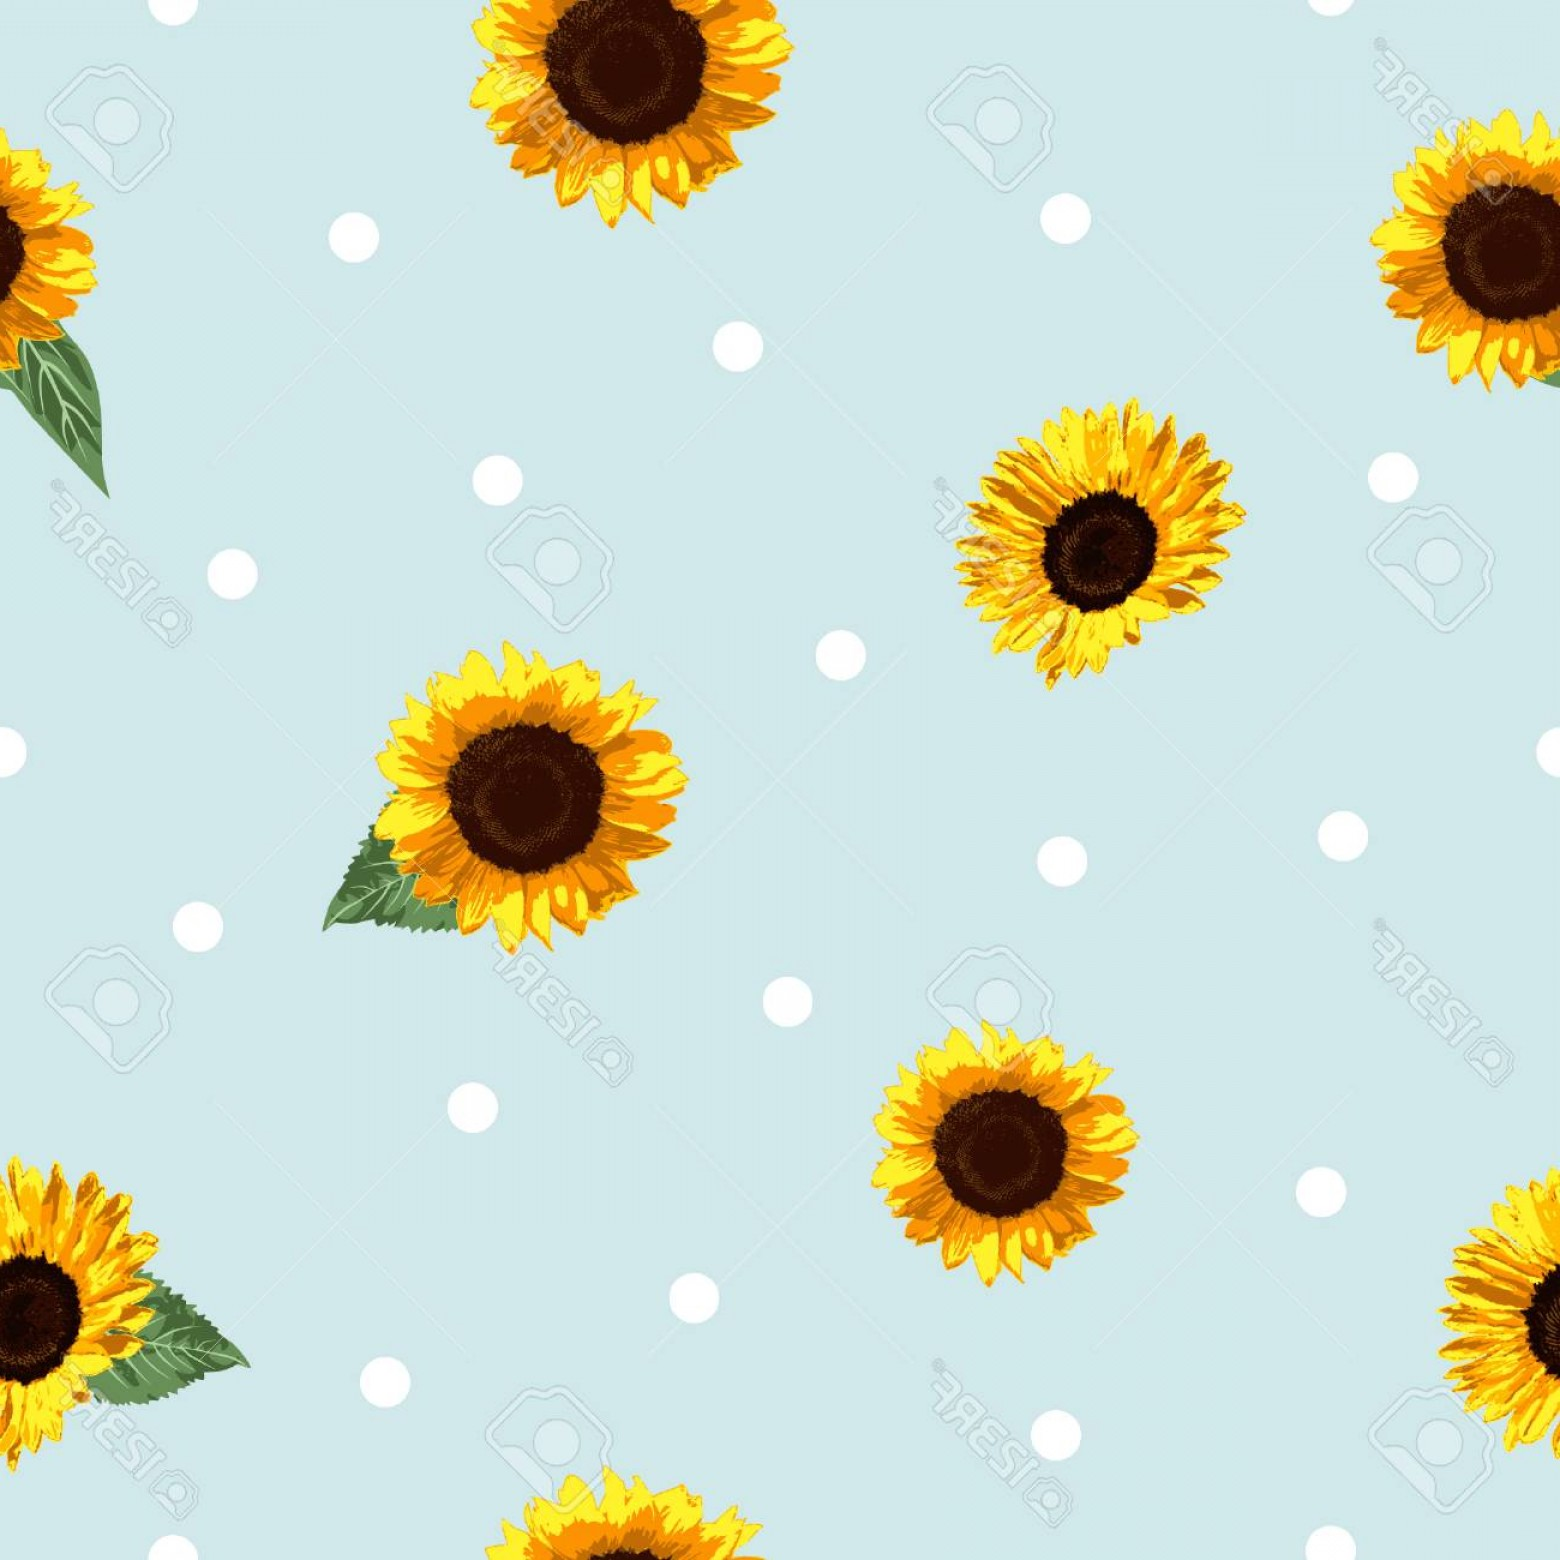 Sunflower Vector Pattern: Photostock Vector The Modern Sunflower Vector Pattern Is Using Minimalist Design Style It Represent Cute Modern Clean